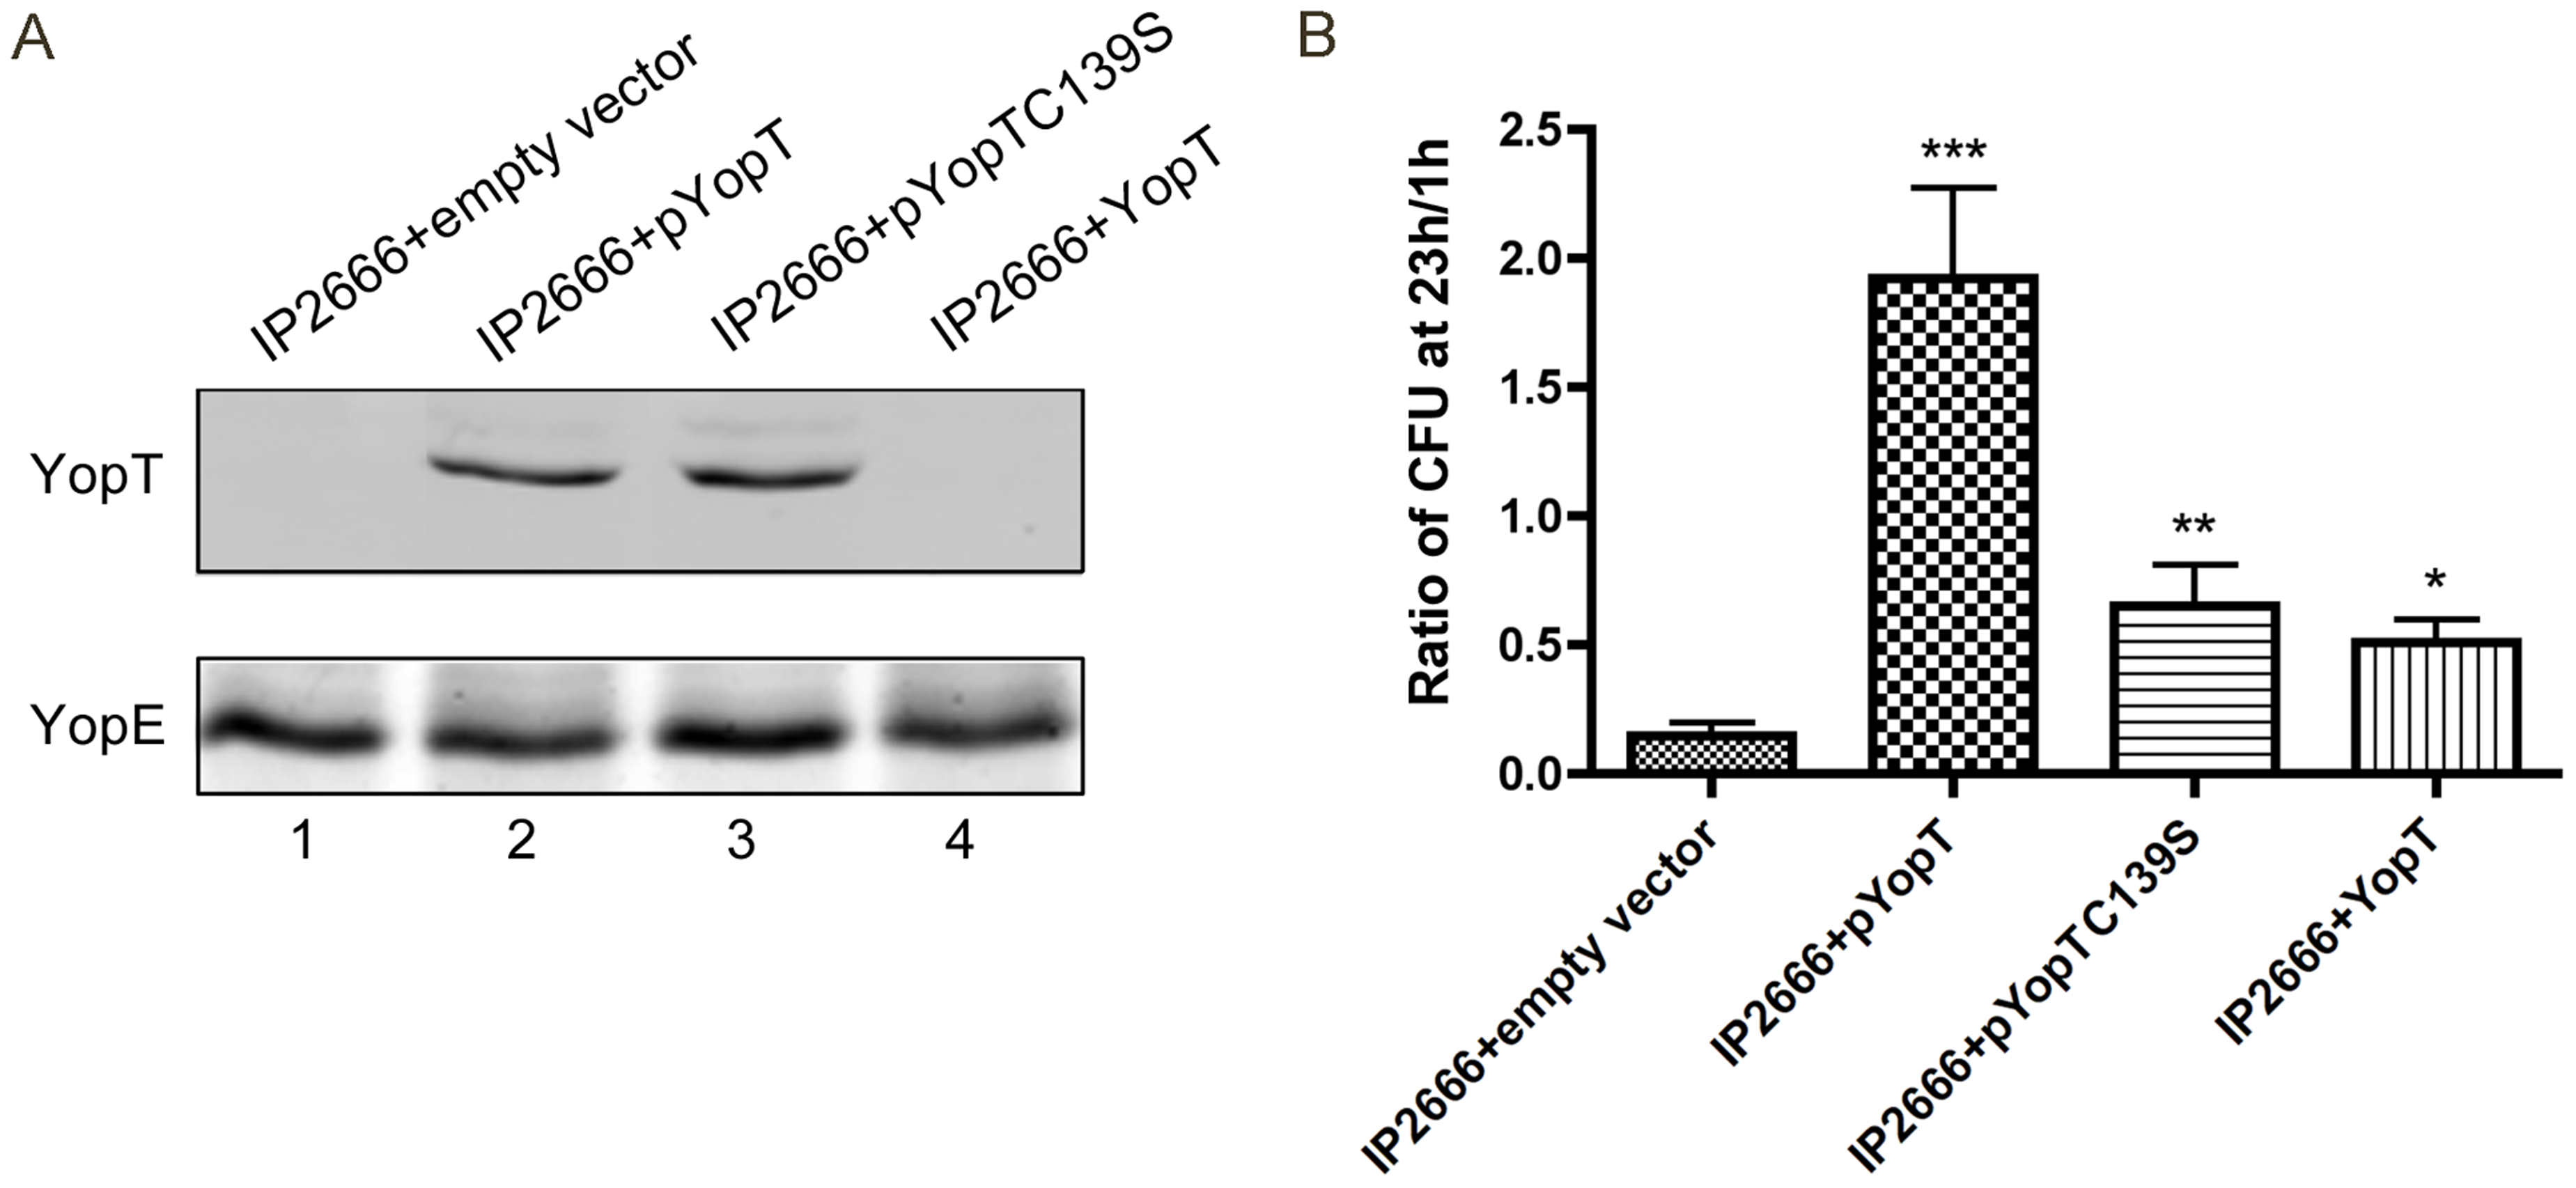 Measurement of YopT production and survival in macrophages by different <i>Y. pseudotuberculosis</i> strains.